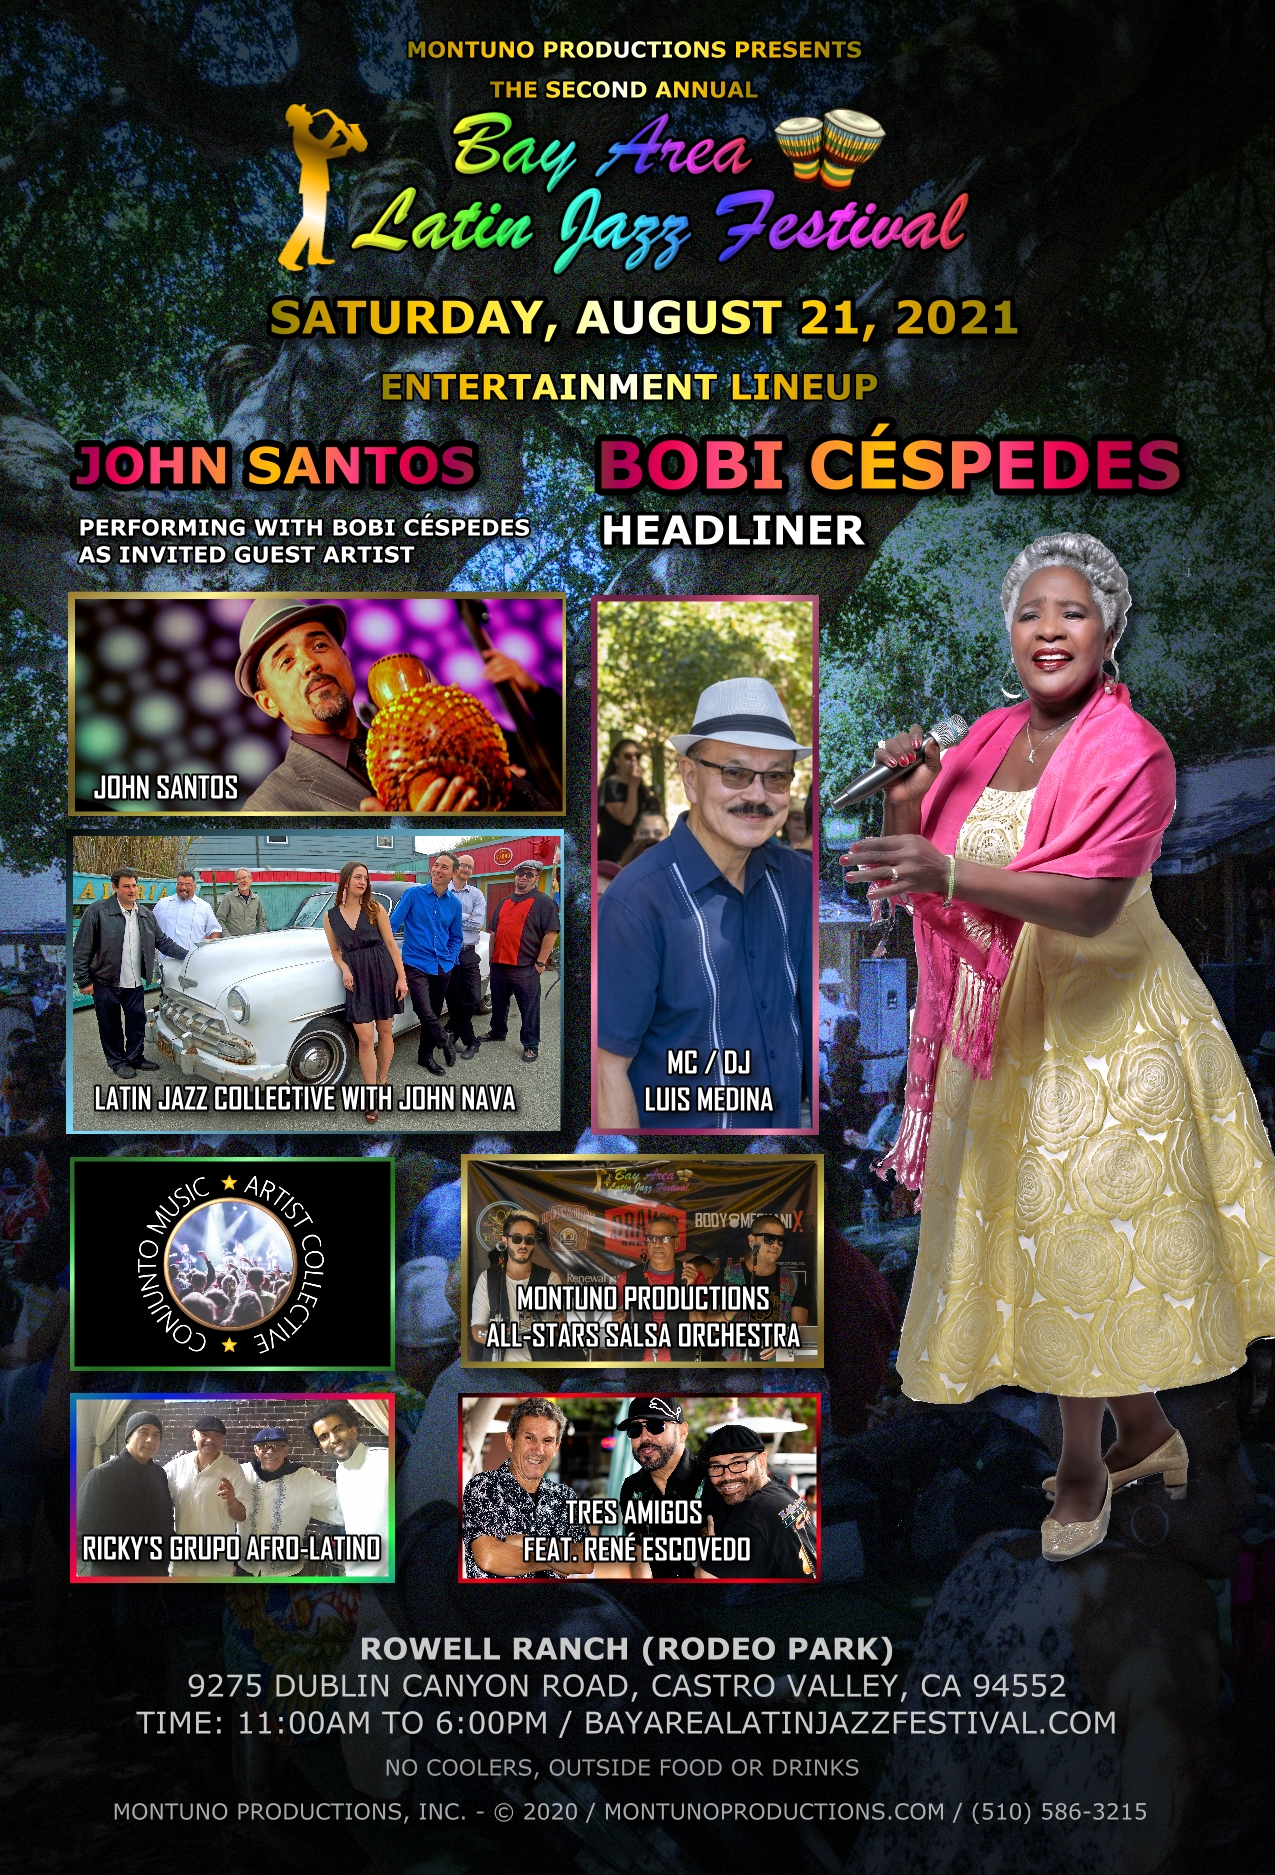 Bay Area Latin Jazz Festival 082121 1275 01